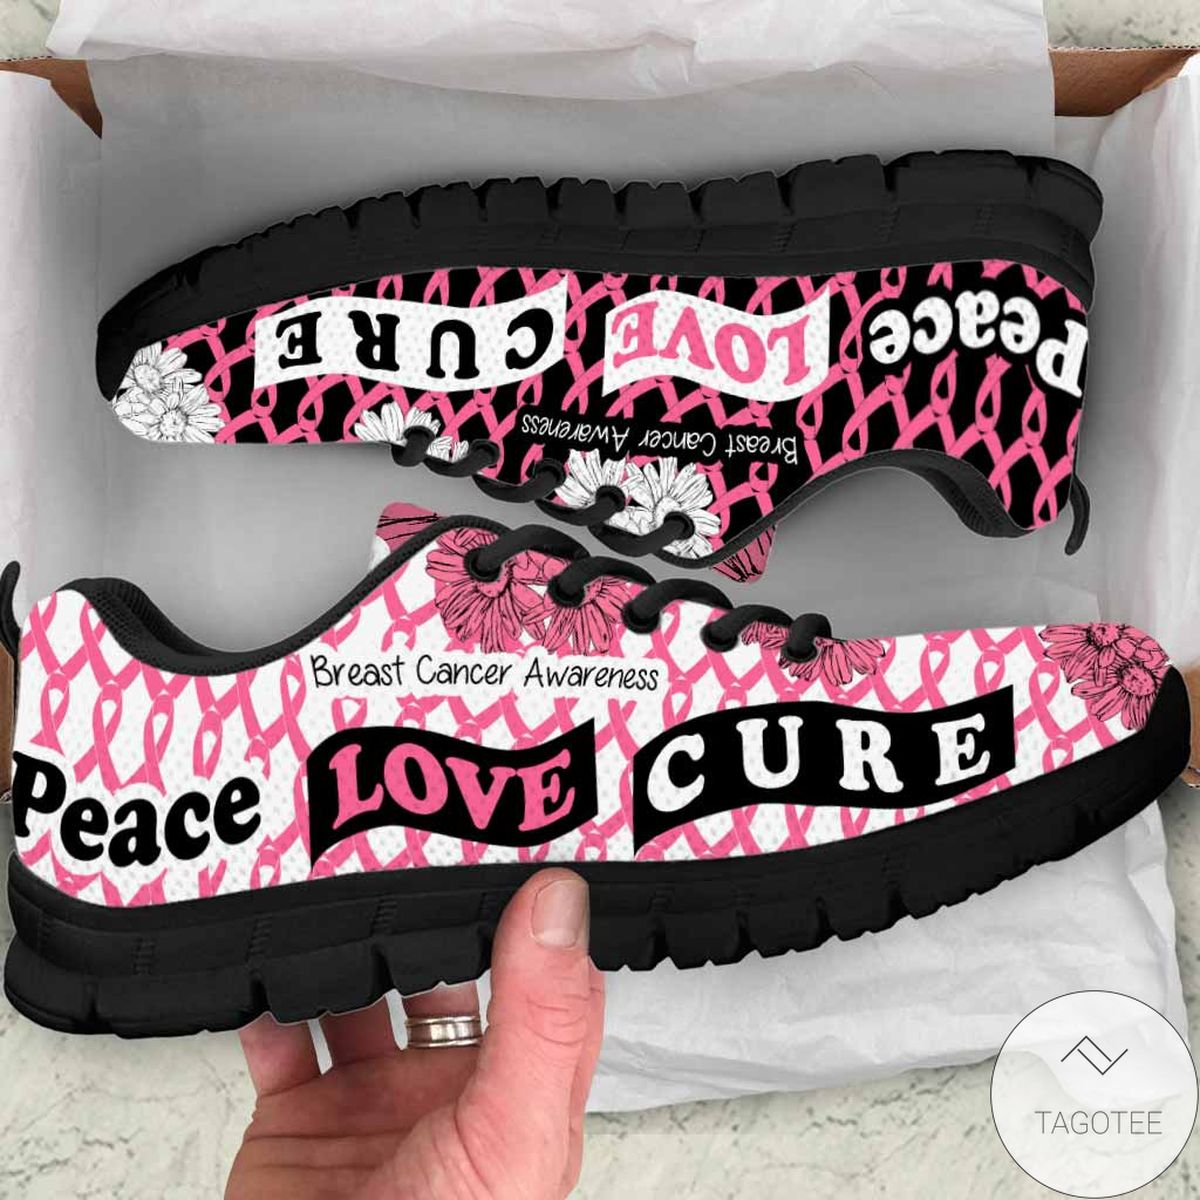 Peace Love Cure Breast Cancer Awareness Sneakers